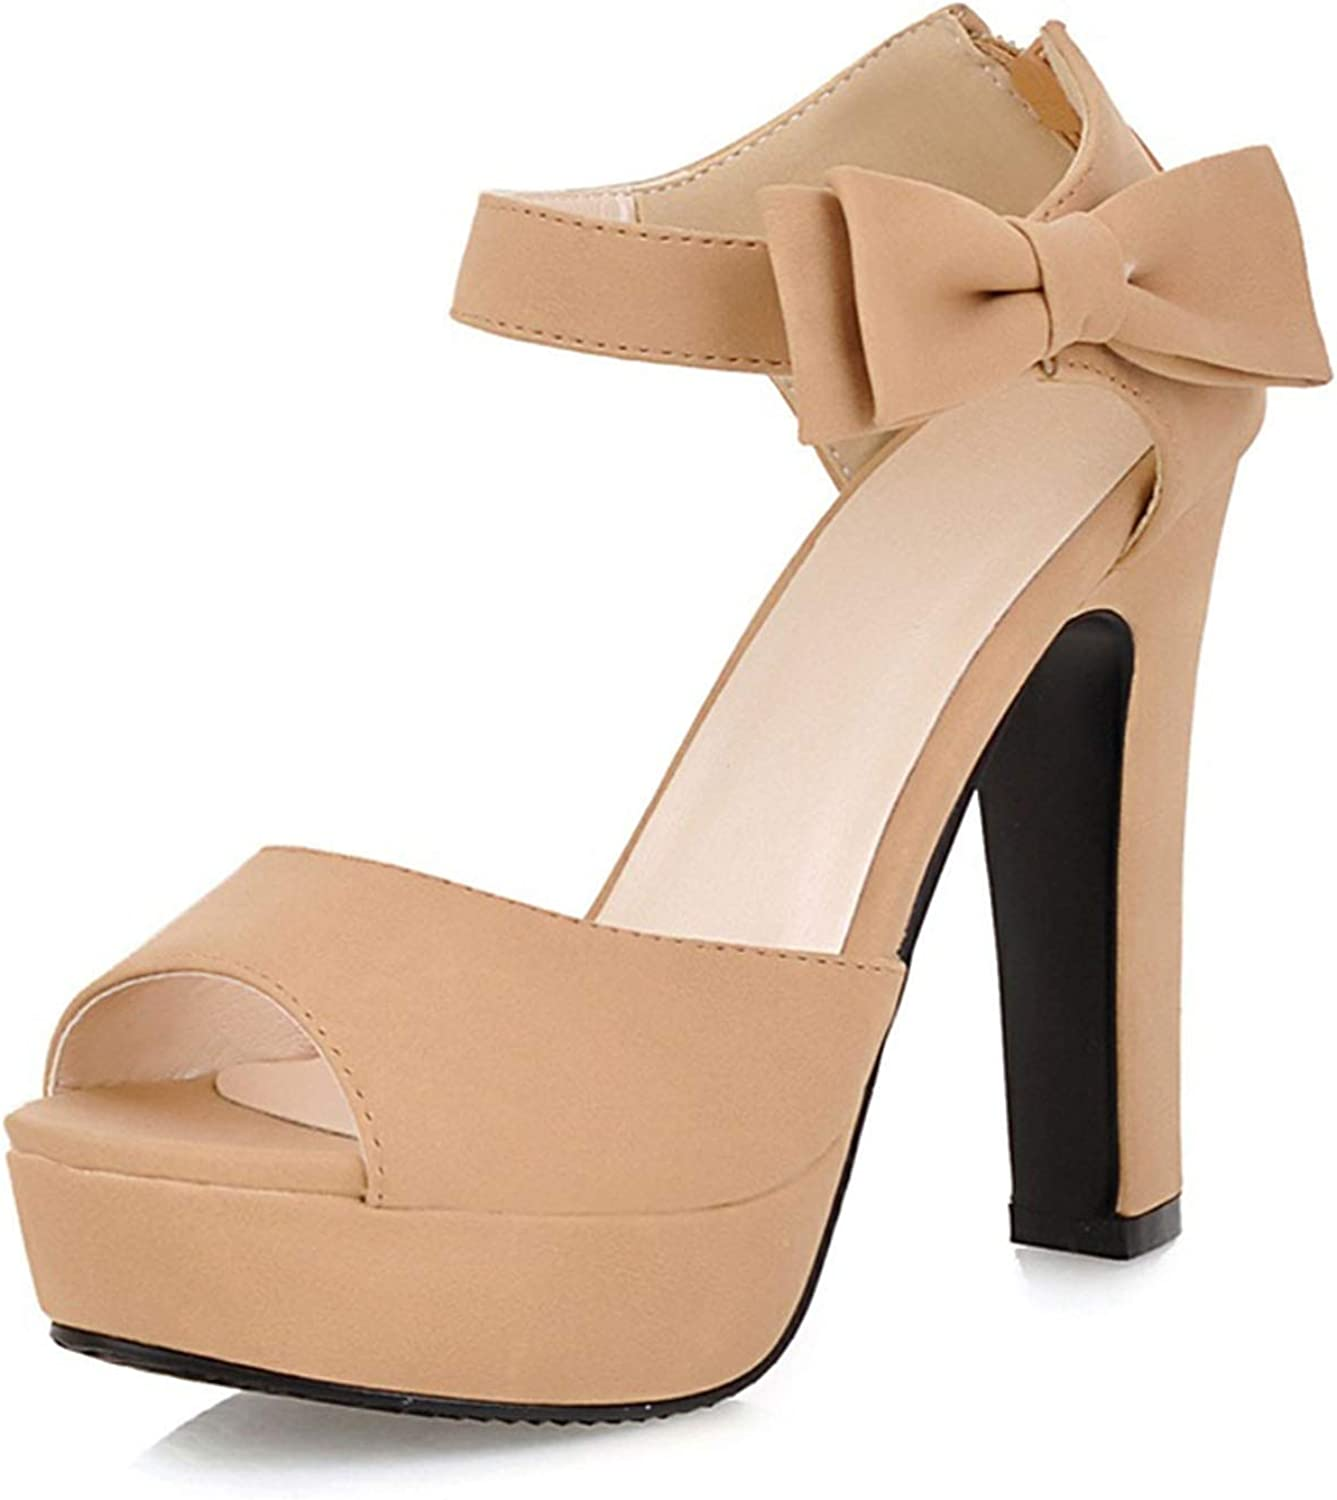 Fairly New Summer Peep Toe Ankle Strap Sweet Thick High Heel Platform Lady shoes,Ivory,8